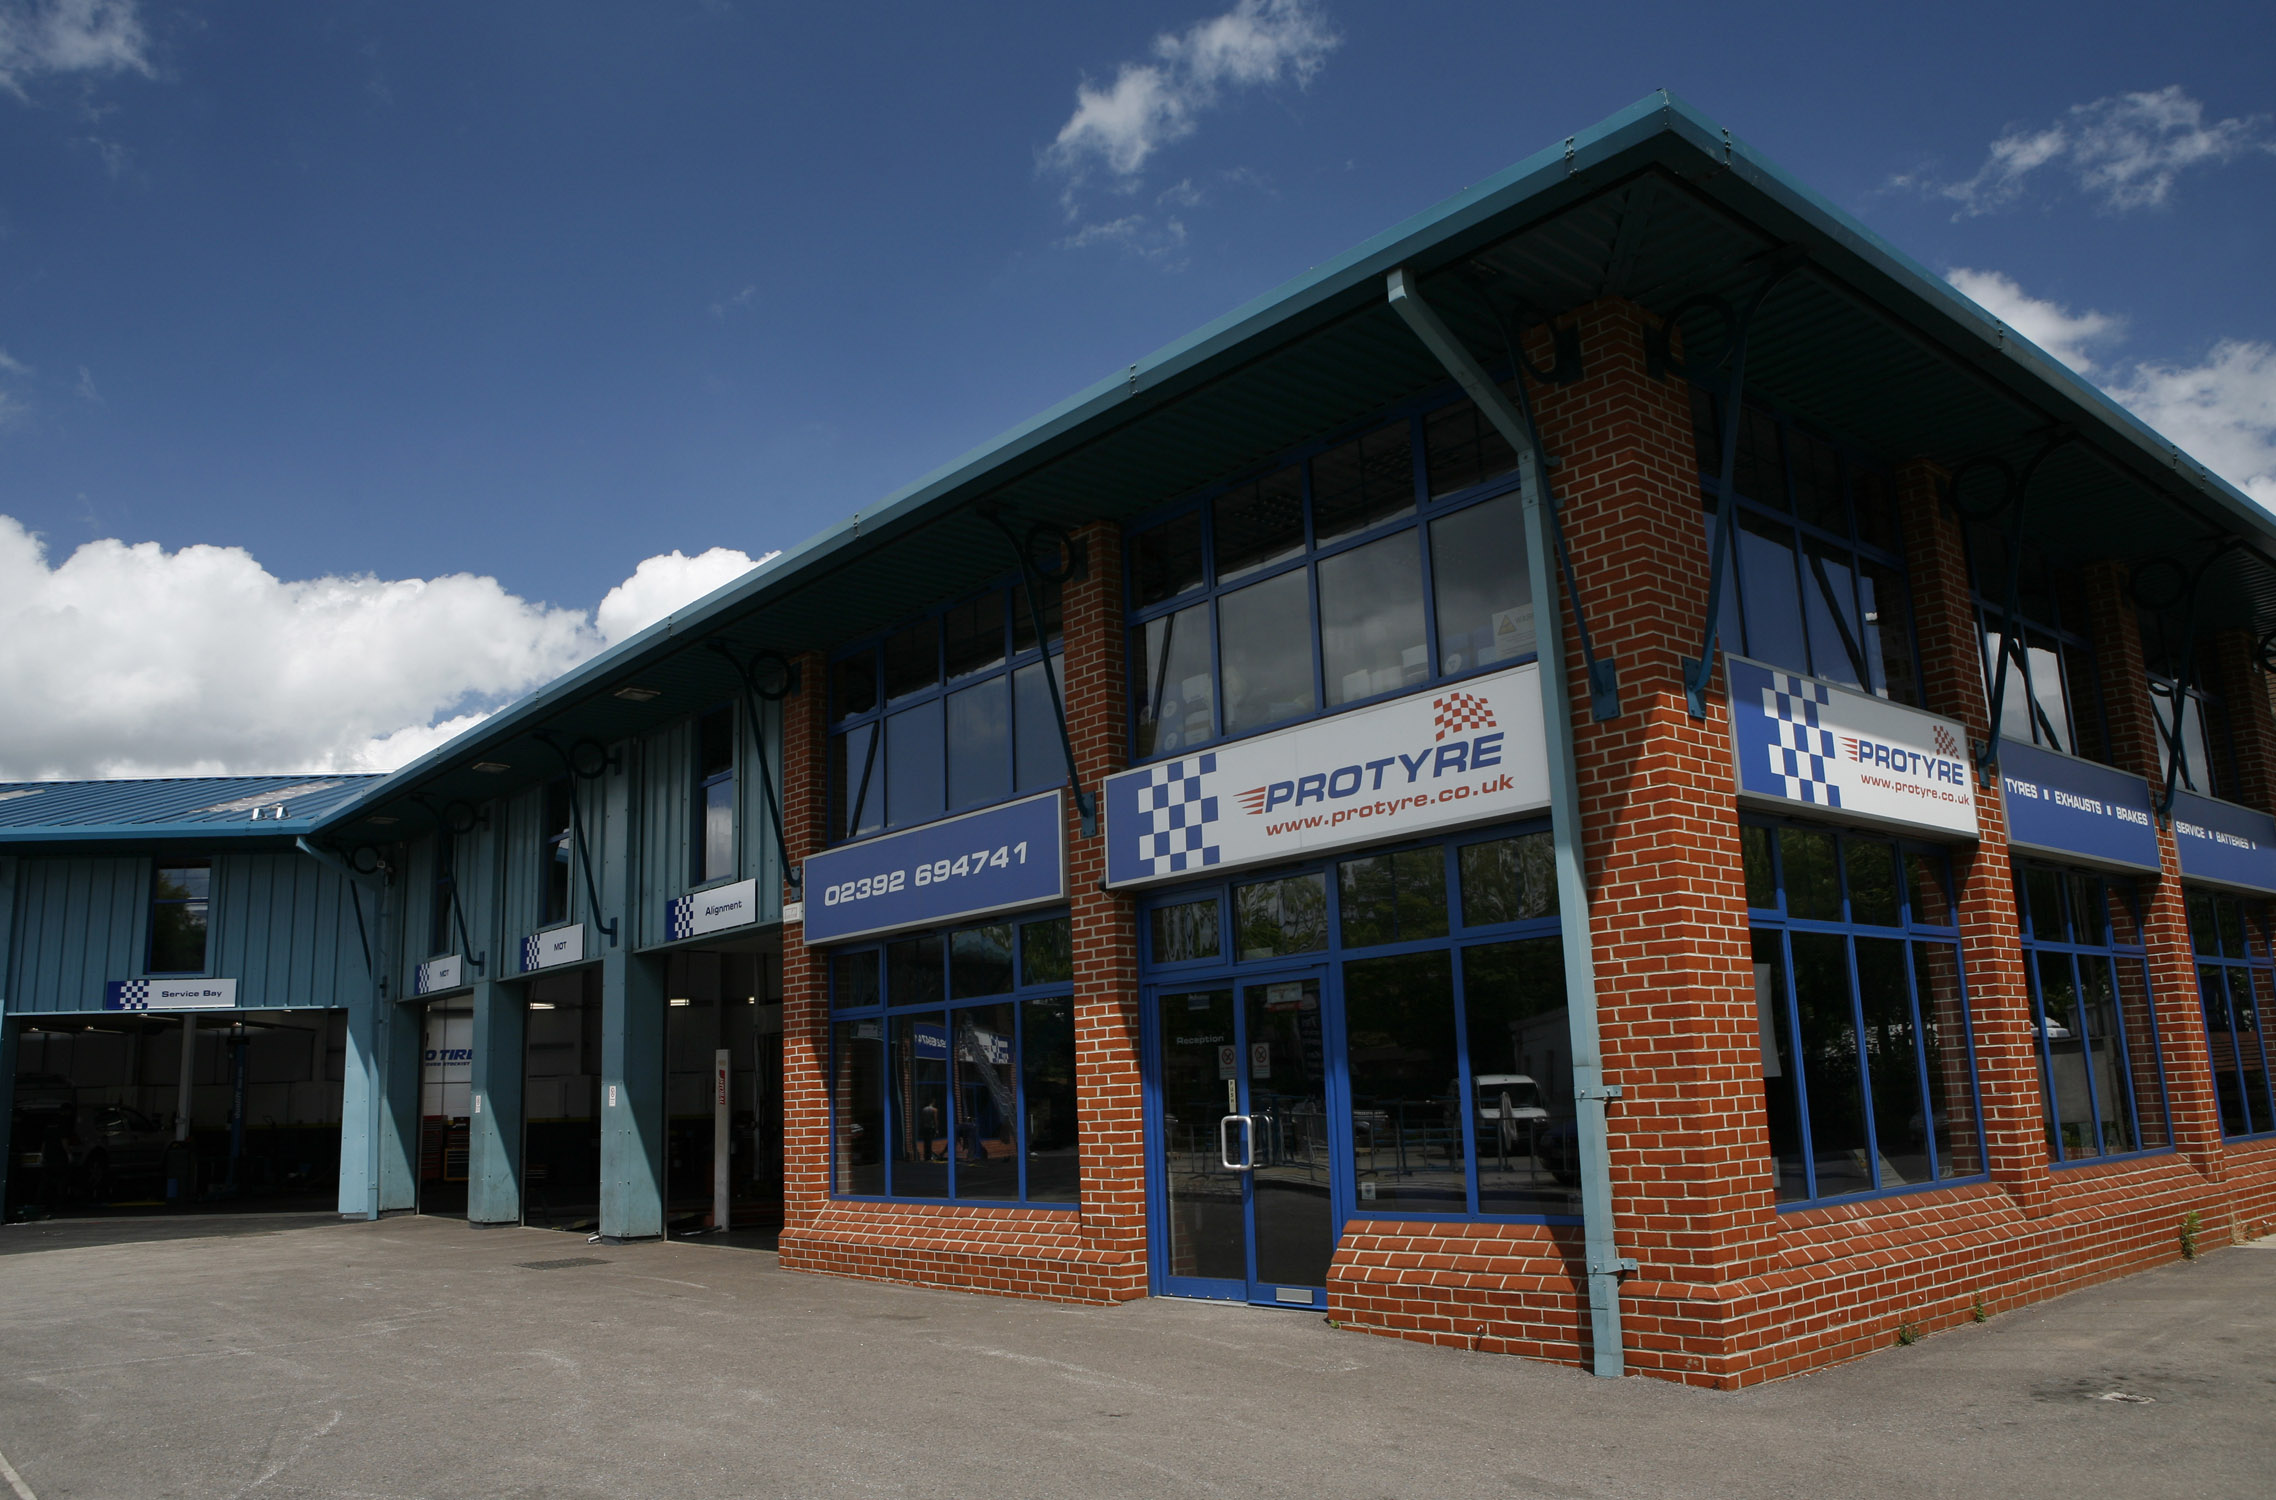 Protyre is fastest growing UK retail chain for 2nd straight year